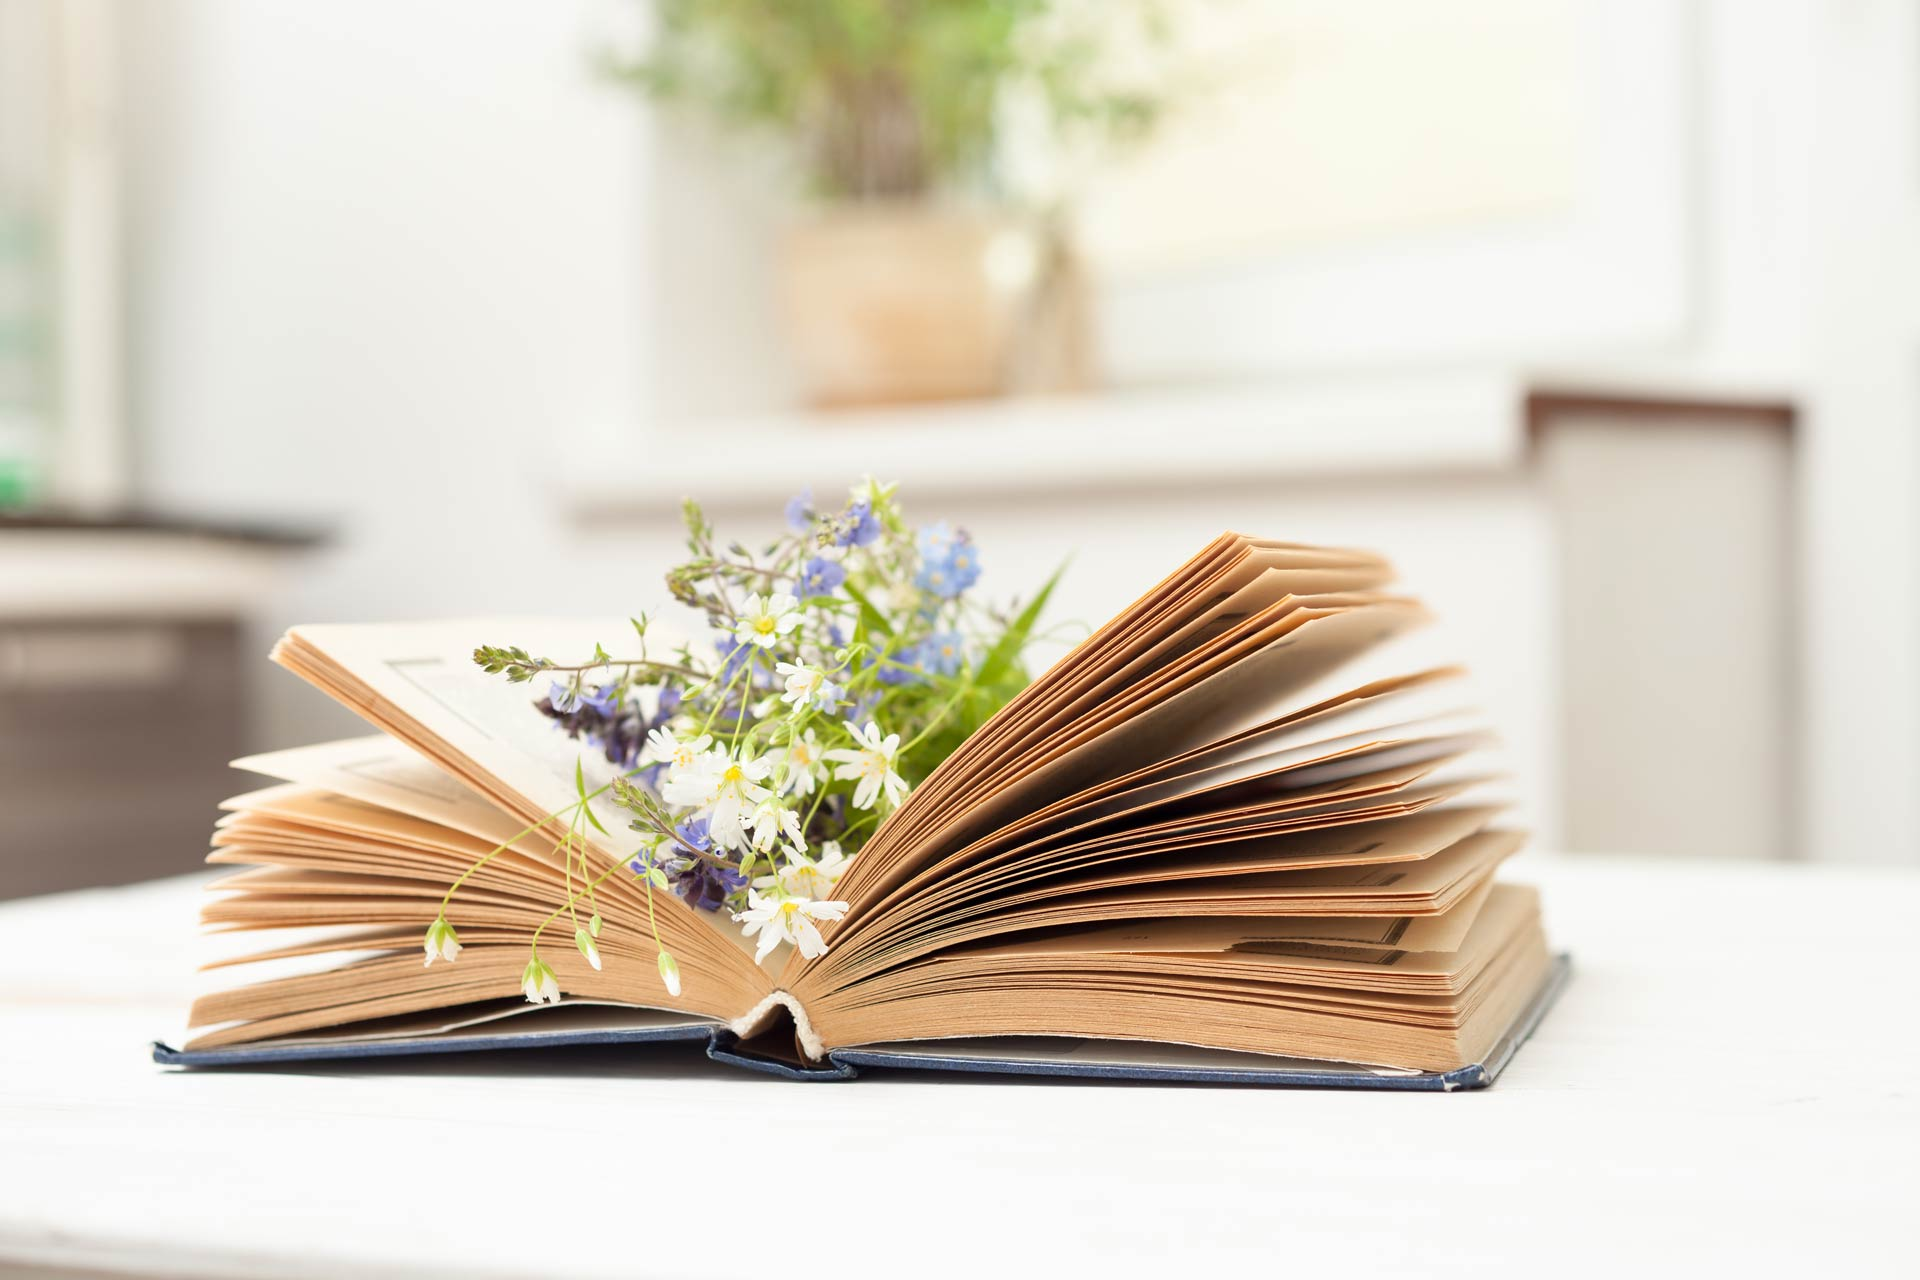 Book of simple living quotes with flowers inside on white table